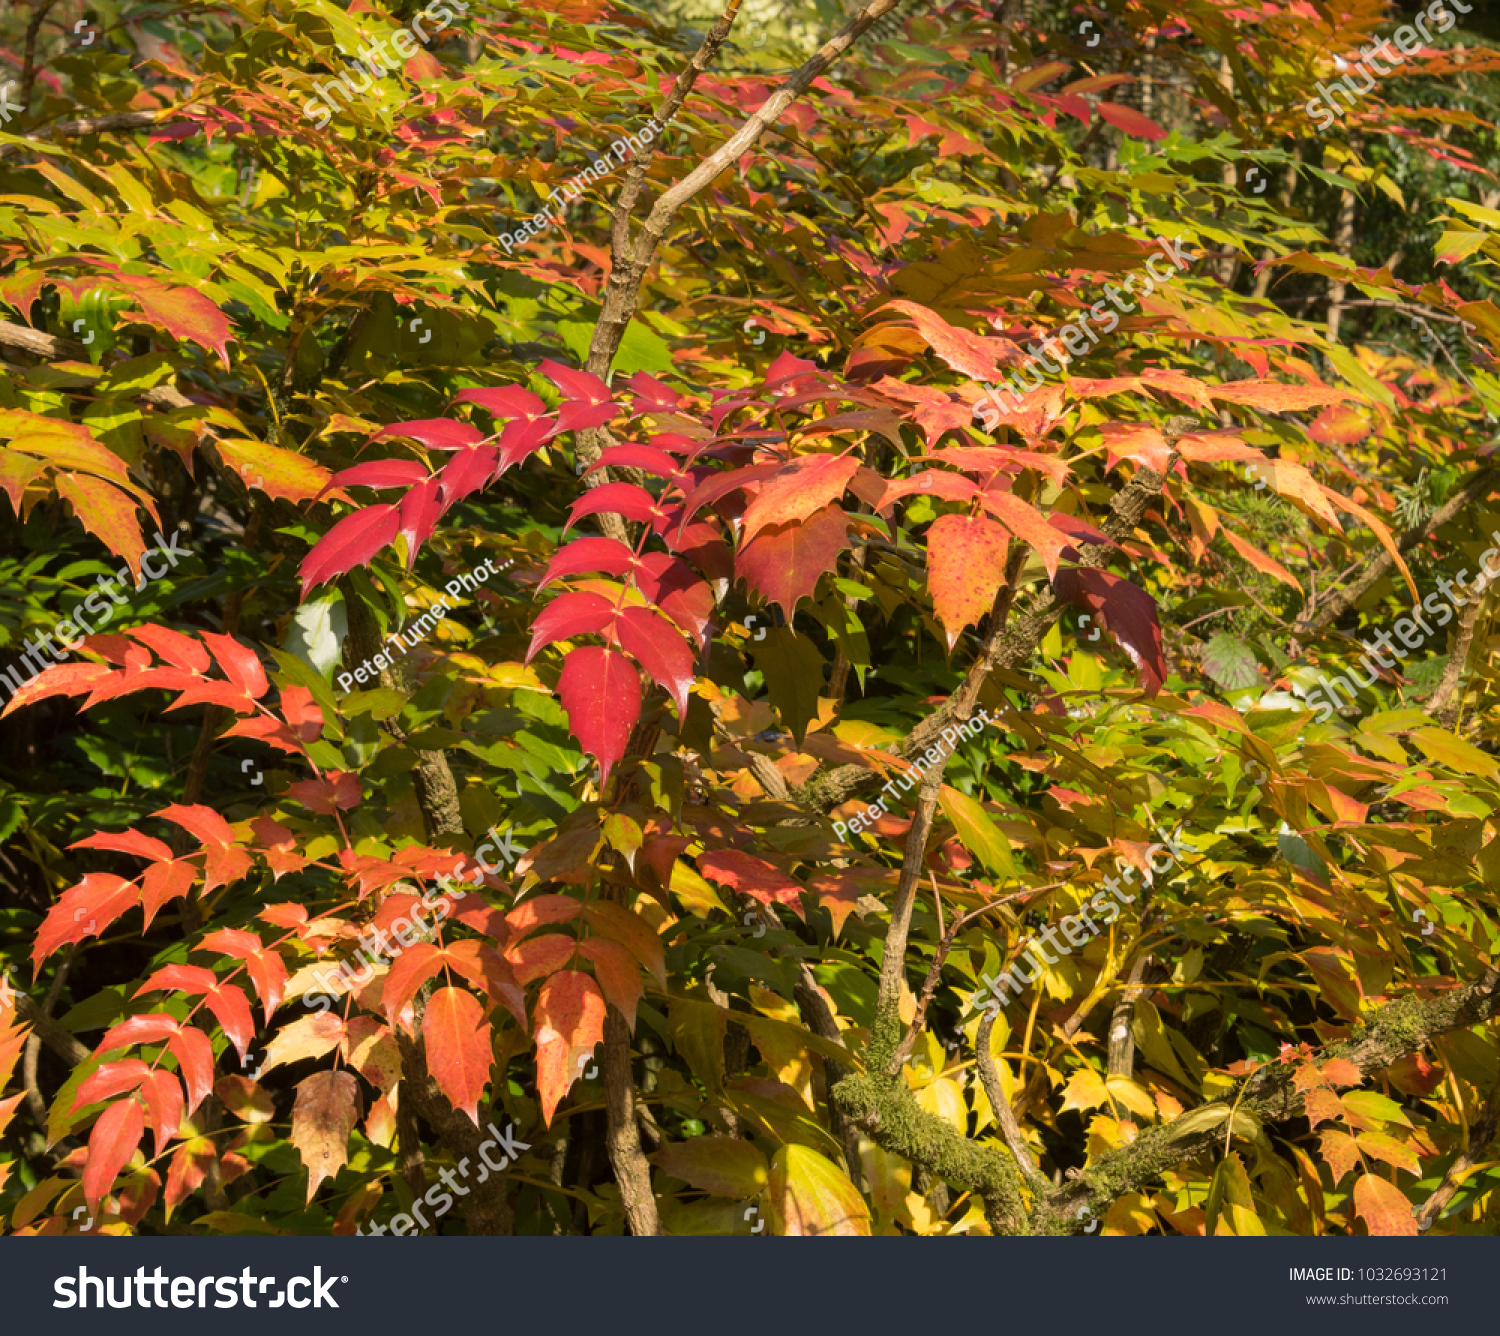 Winter Colours Of Mahonia Japonica (Japanese Mahonia) In A Woodland